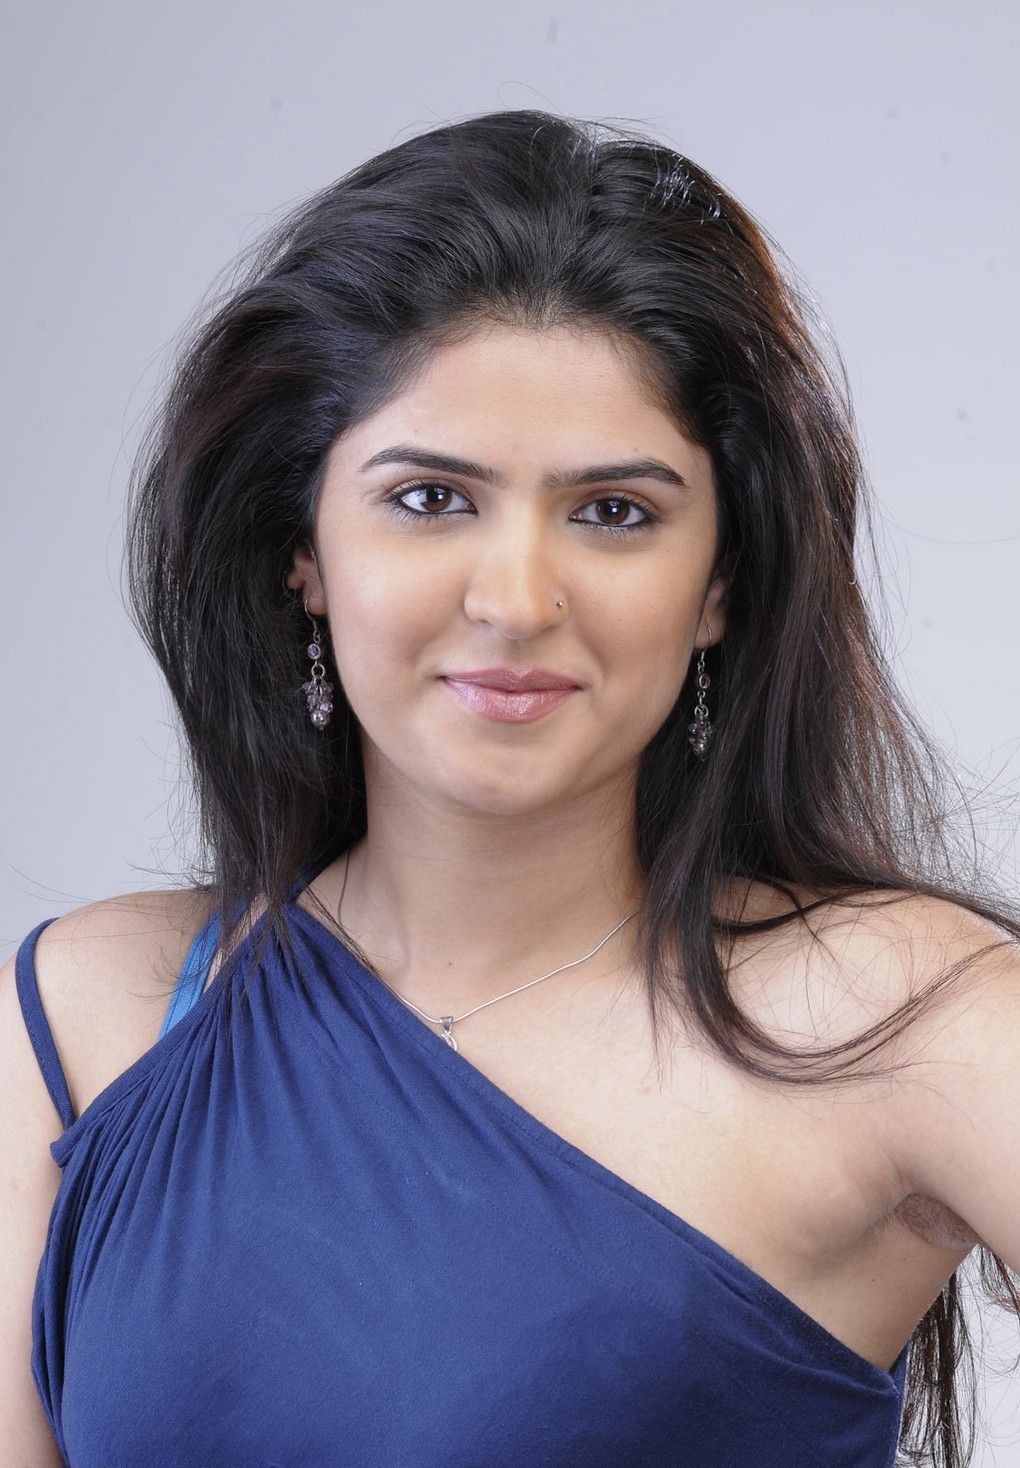 Tamil film 'Vettai Mannan' actress Deeksha Seth Ultra 4K Wallpapers